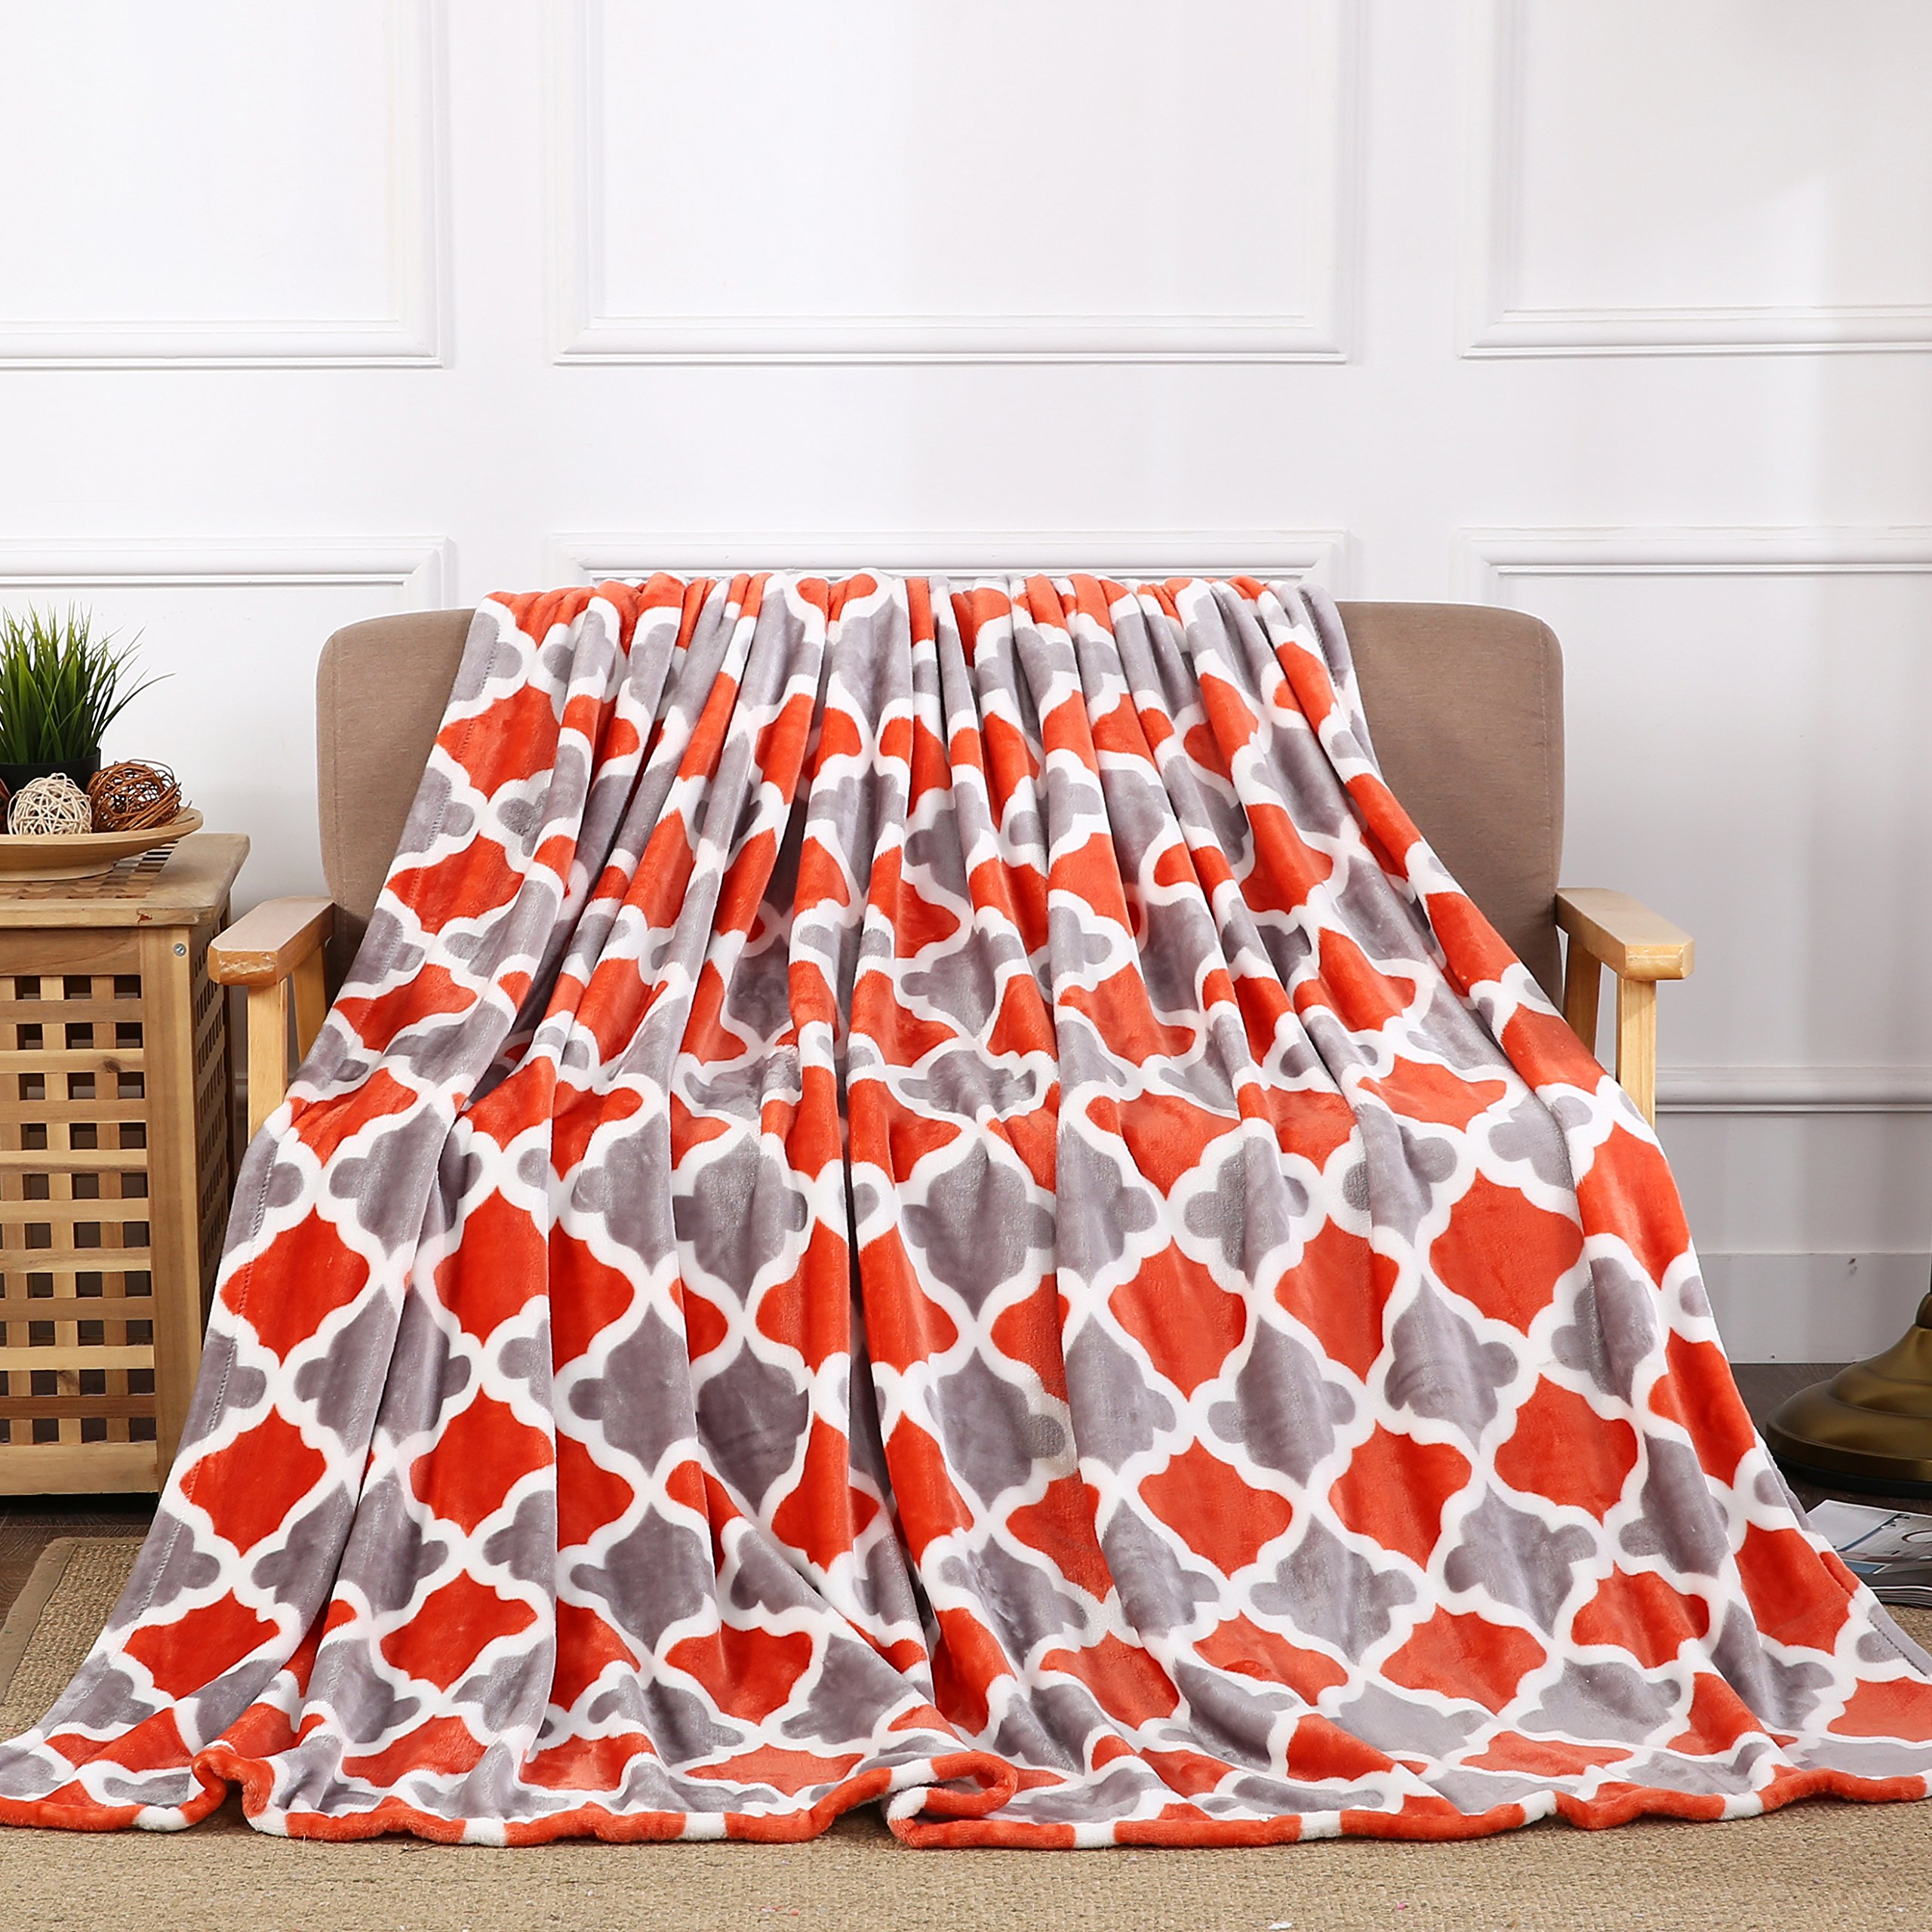 All American Collection New Super Soft Printed Throw Blanket (Throw Size, Orange/Grey Trellis)